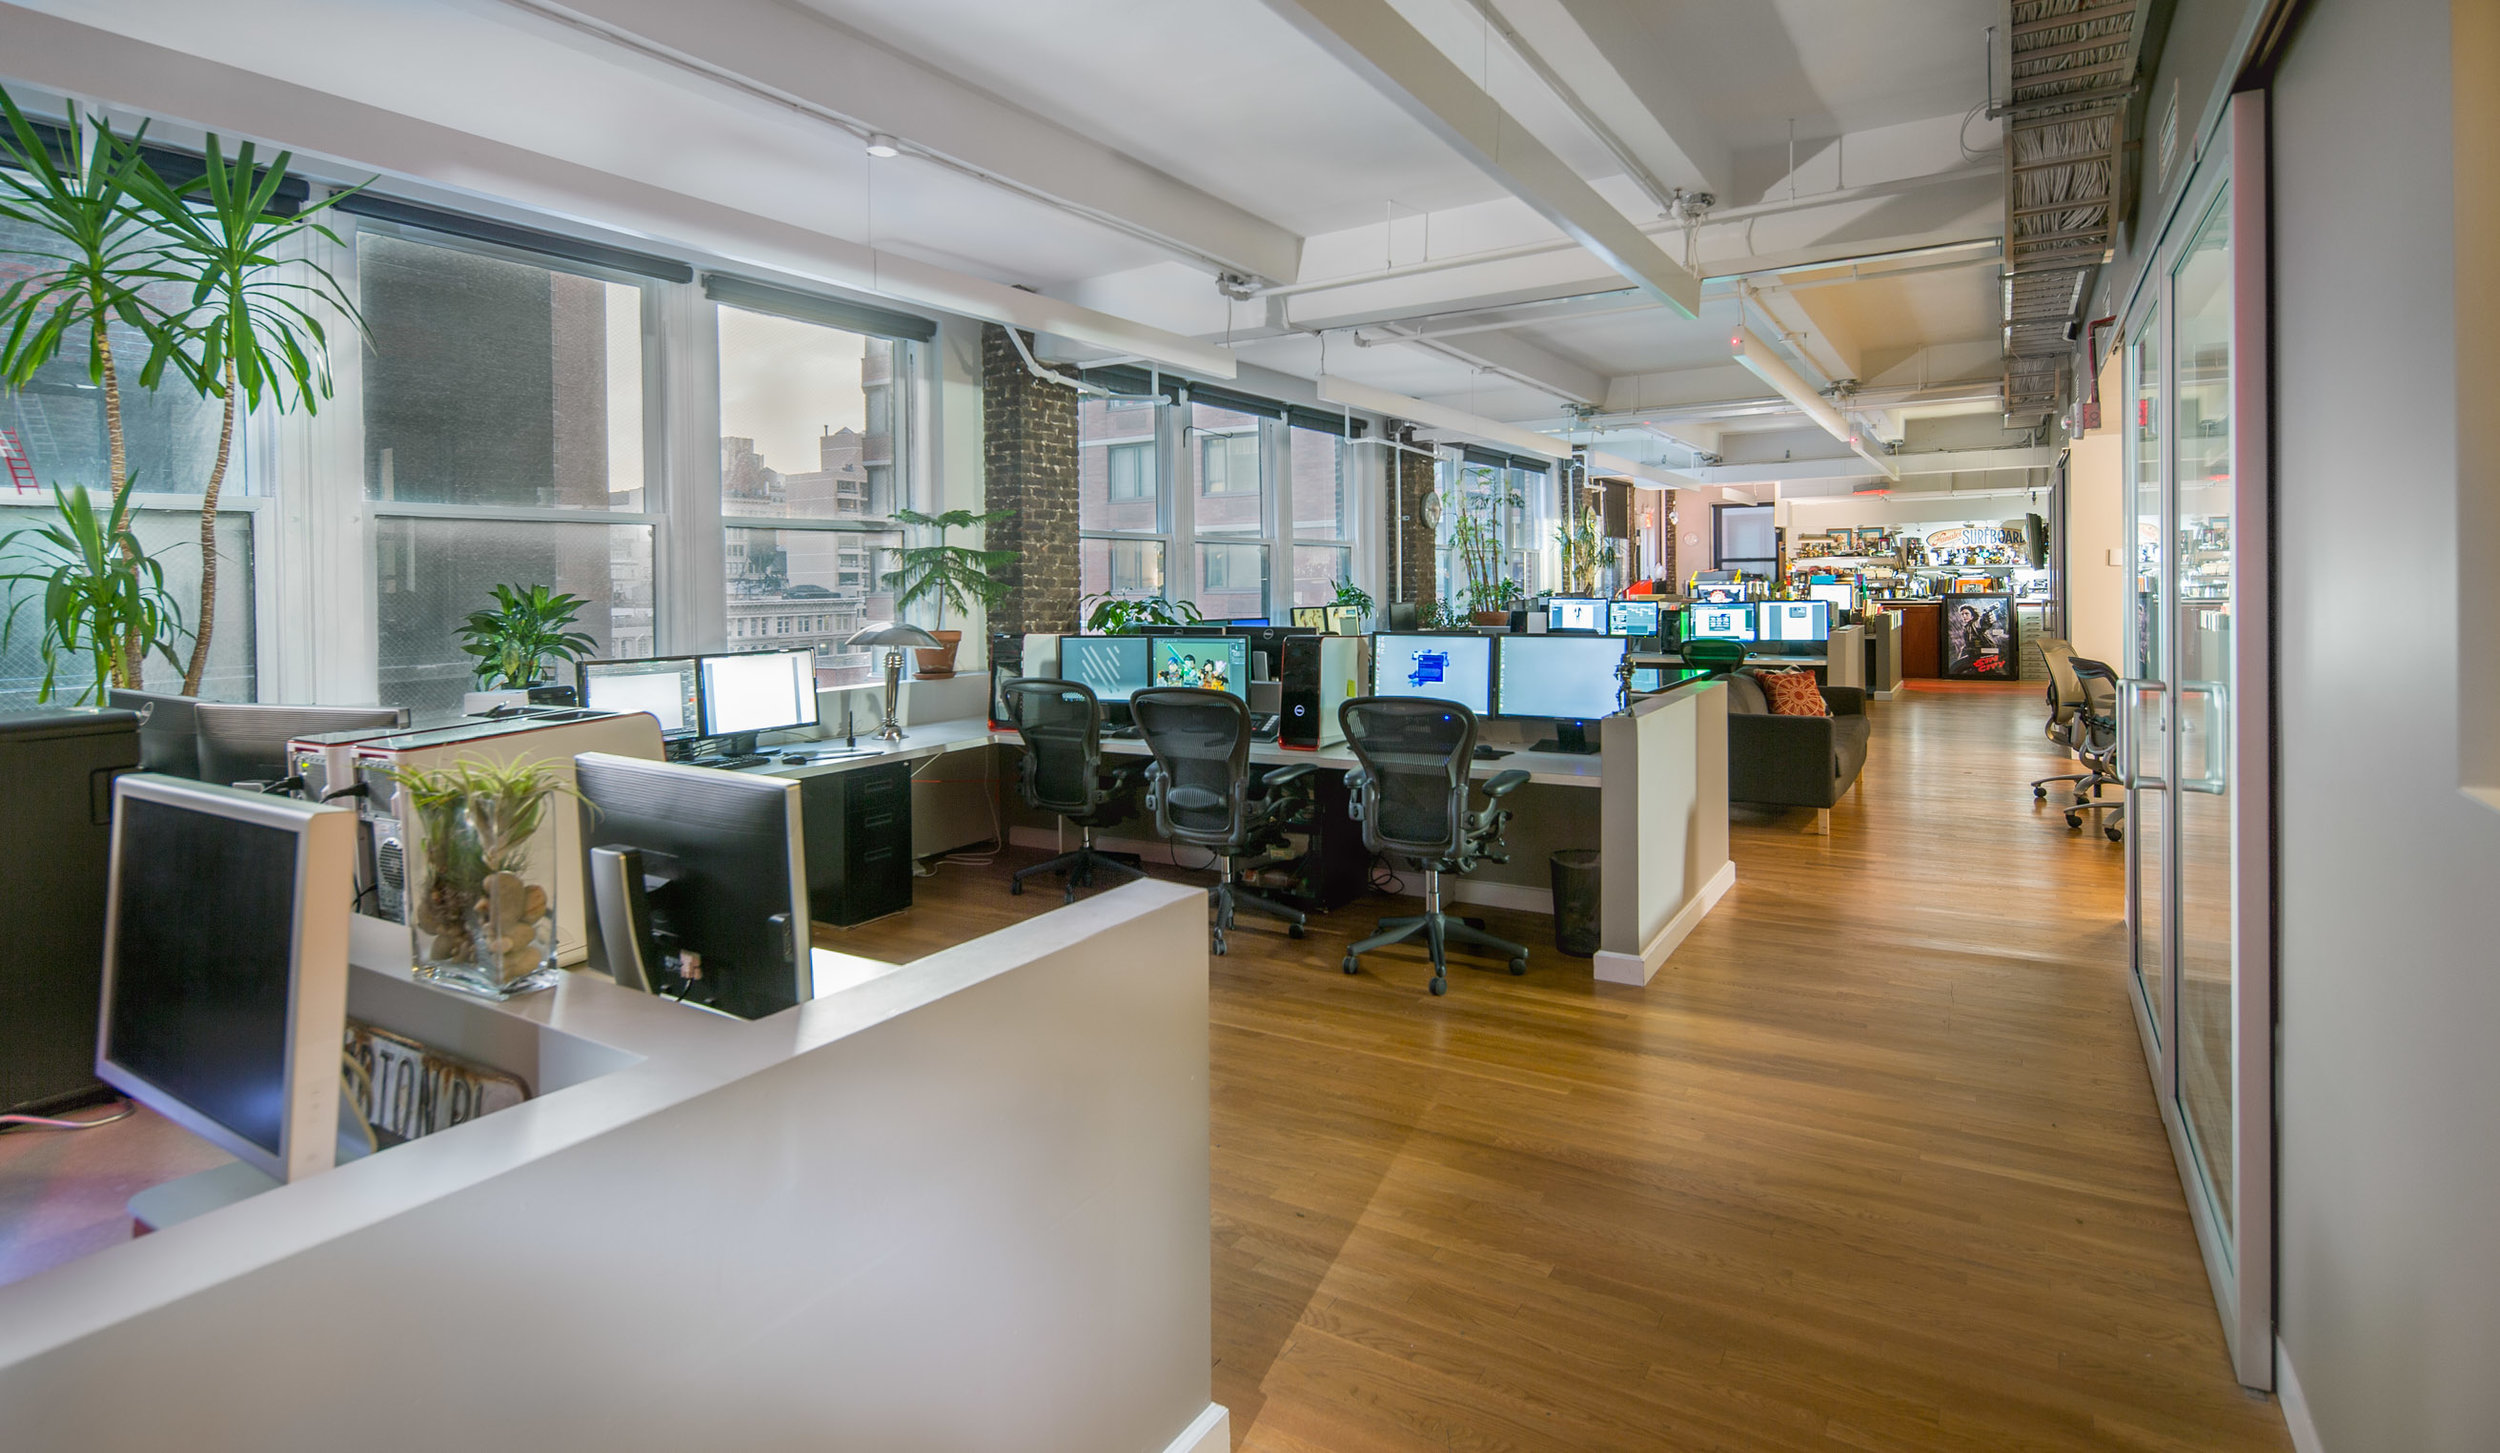 Cubicle spaces with various computers and plants along the windows of the Napoleon studios in Brooklyn, New York. MEP provided by 2L Engineering.